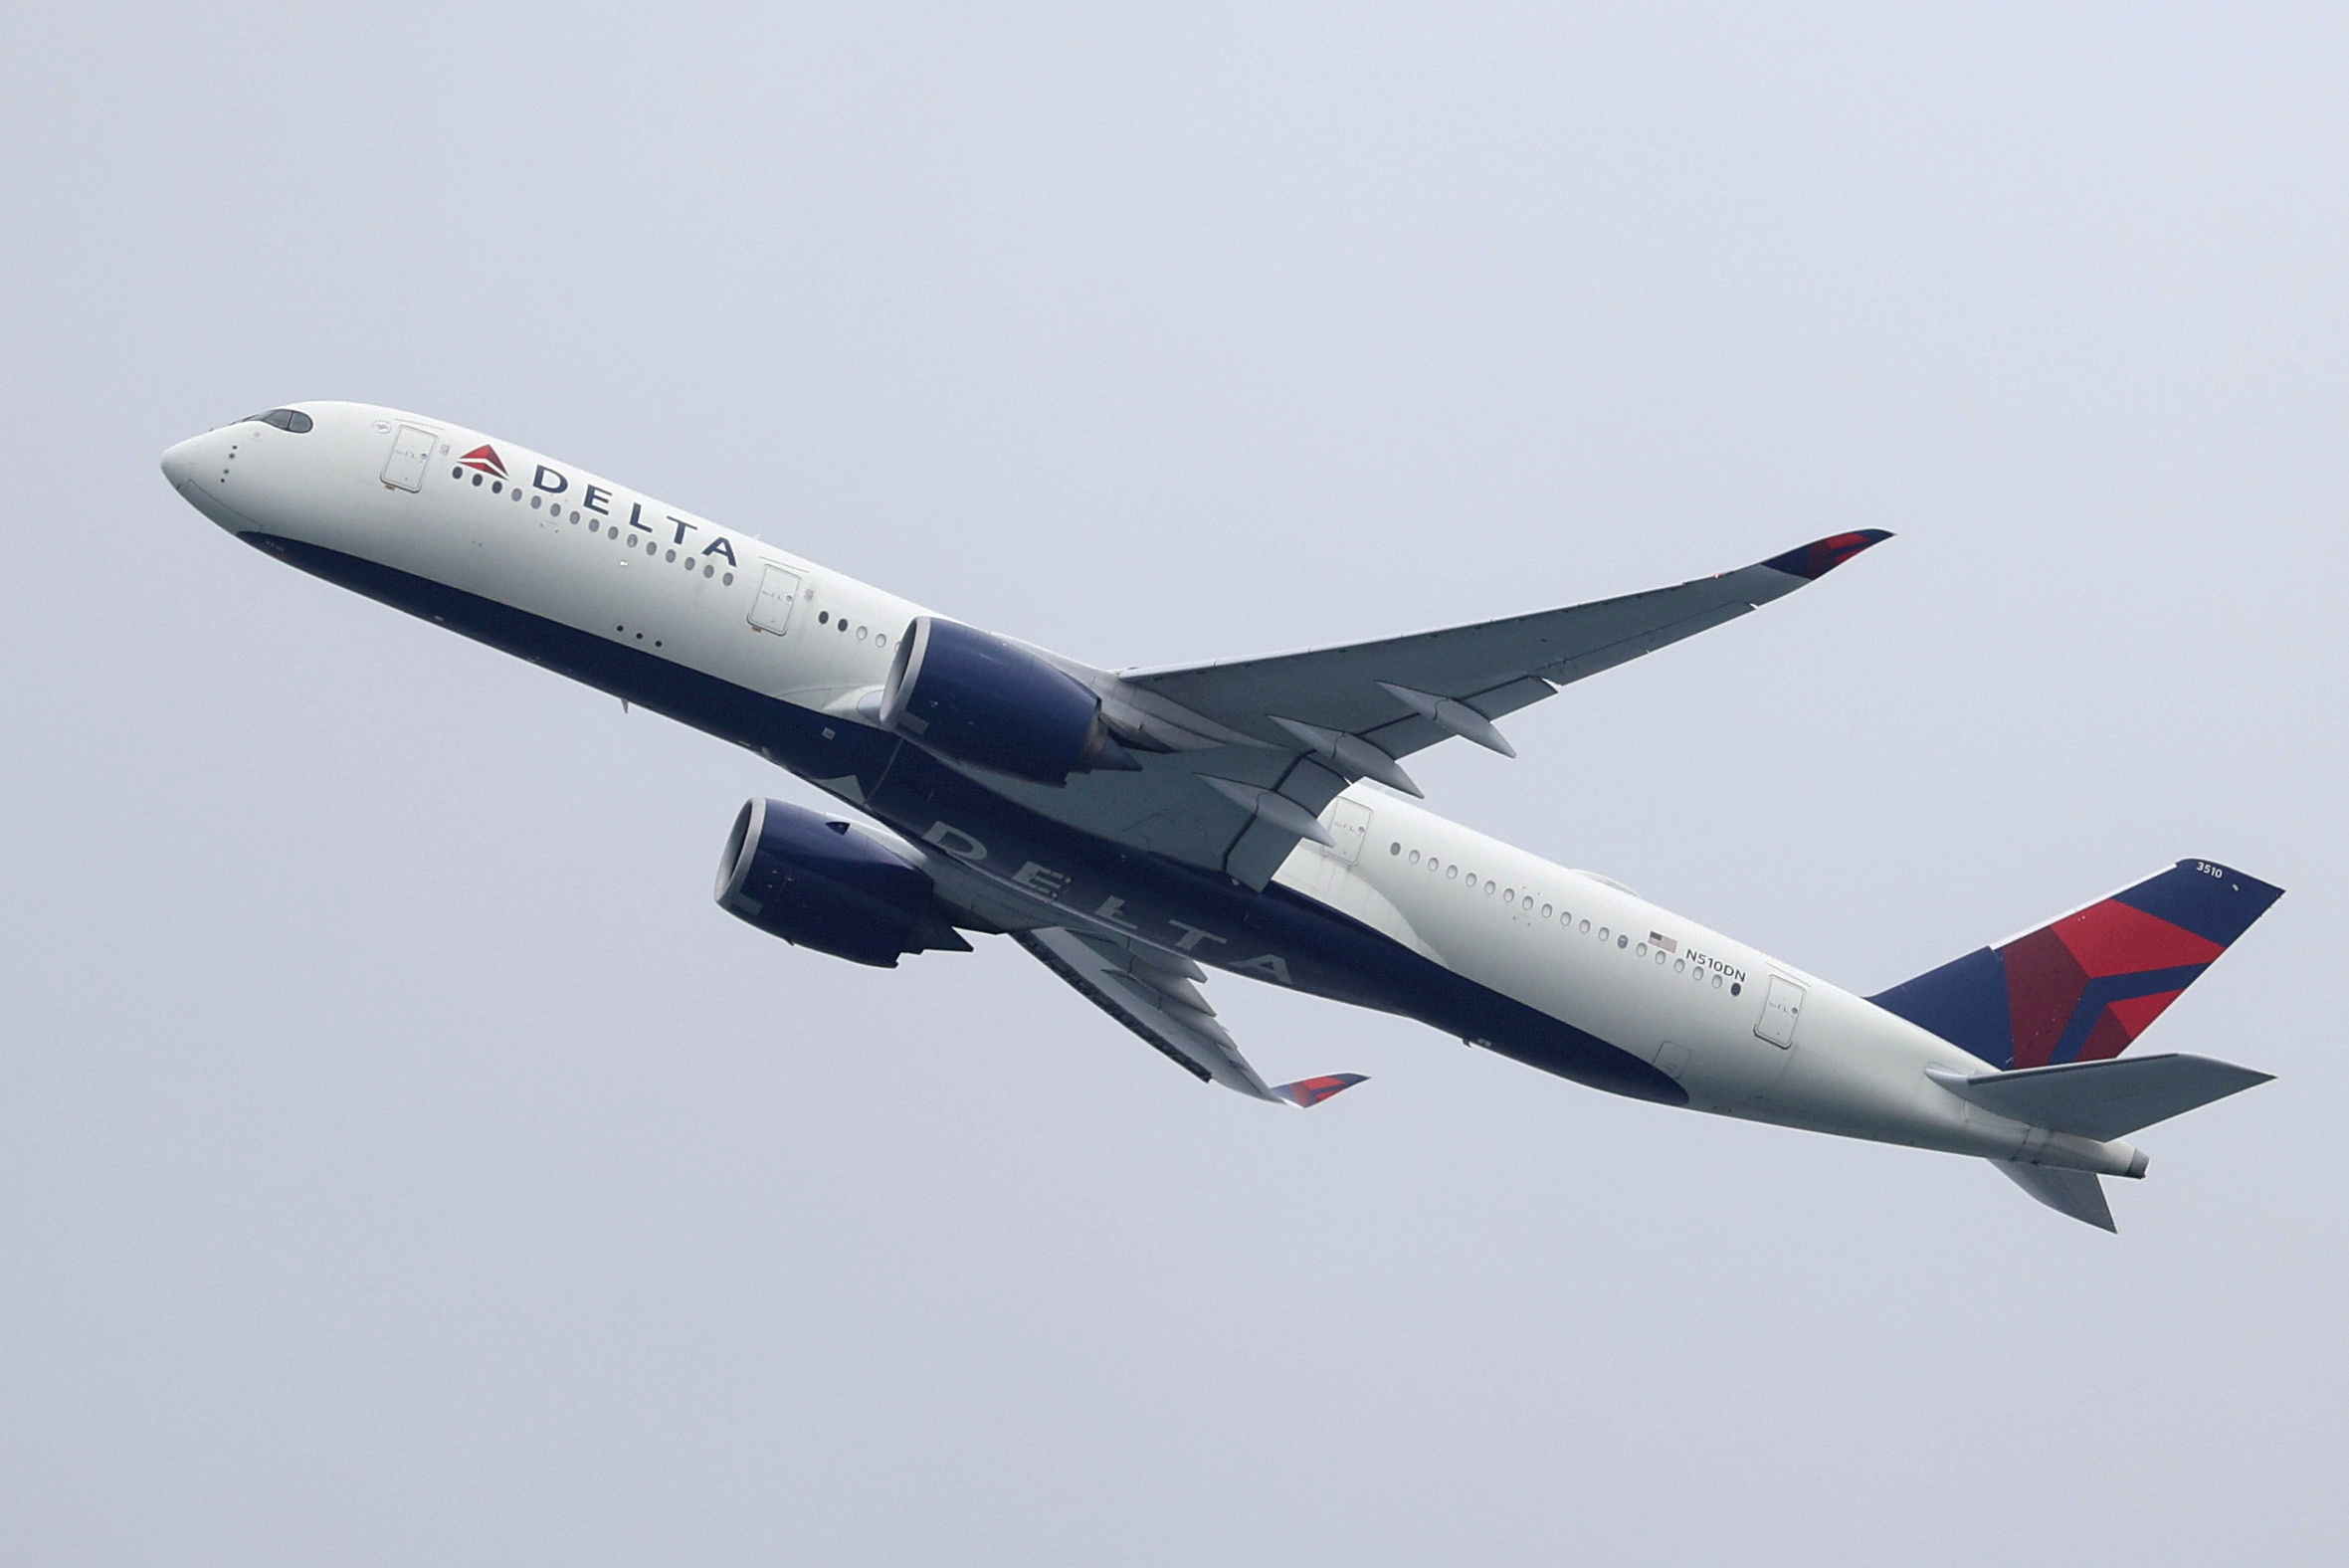 A Delta Air Lines Airbus A350-900 plane takes off from Sydney Airport in Sydney, Australia, October 28, 2020. REUTERS/Loren Elliott